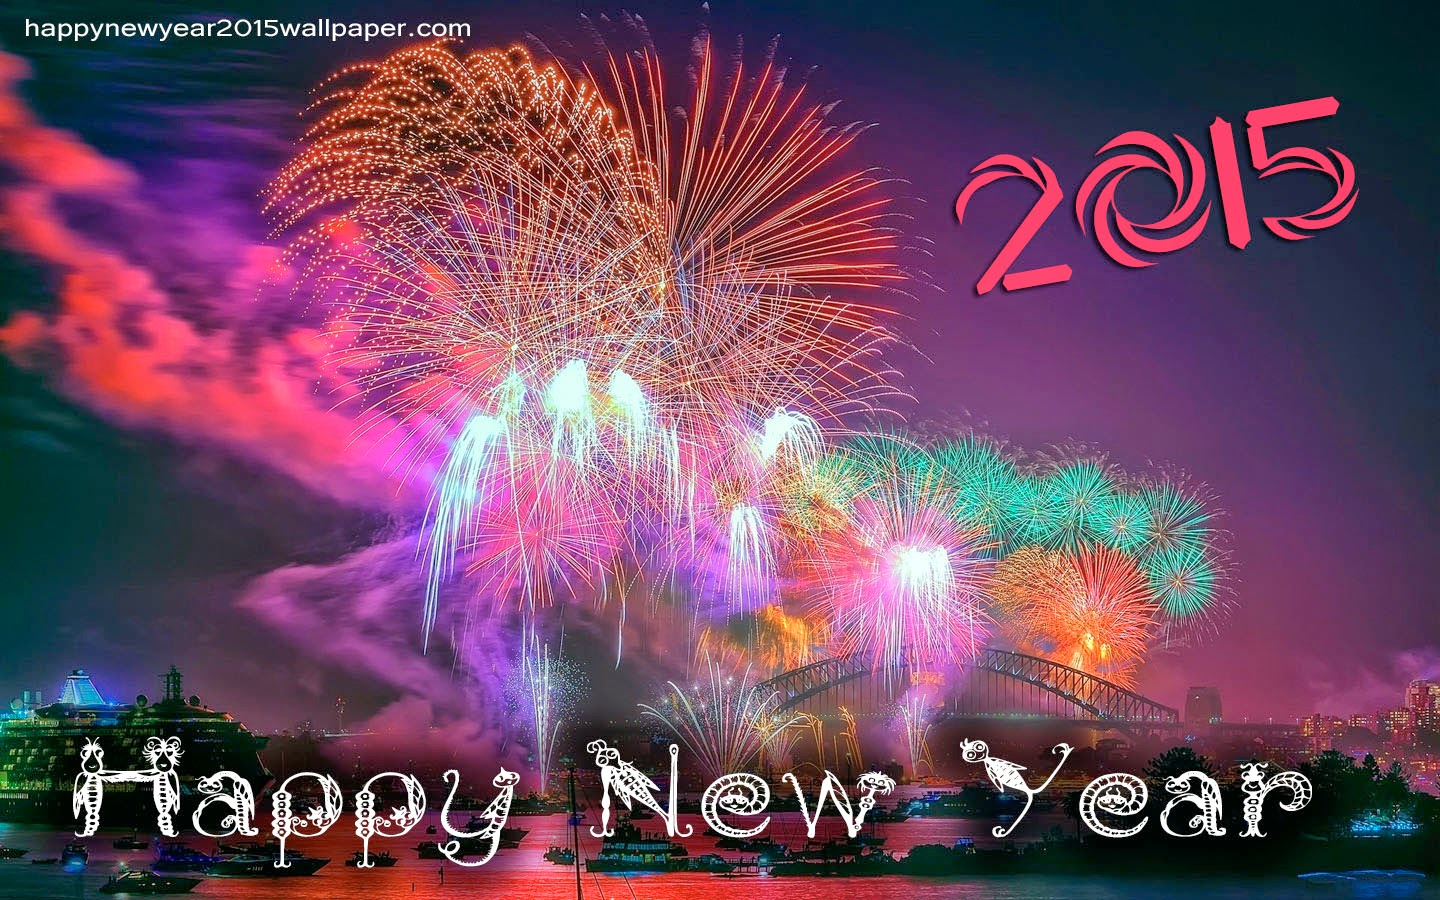 Wallpaper Happy New Year 2015 Wallpapers Chainimage 1440x900